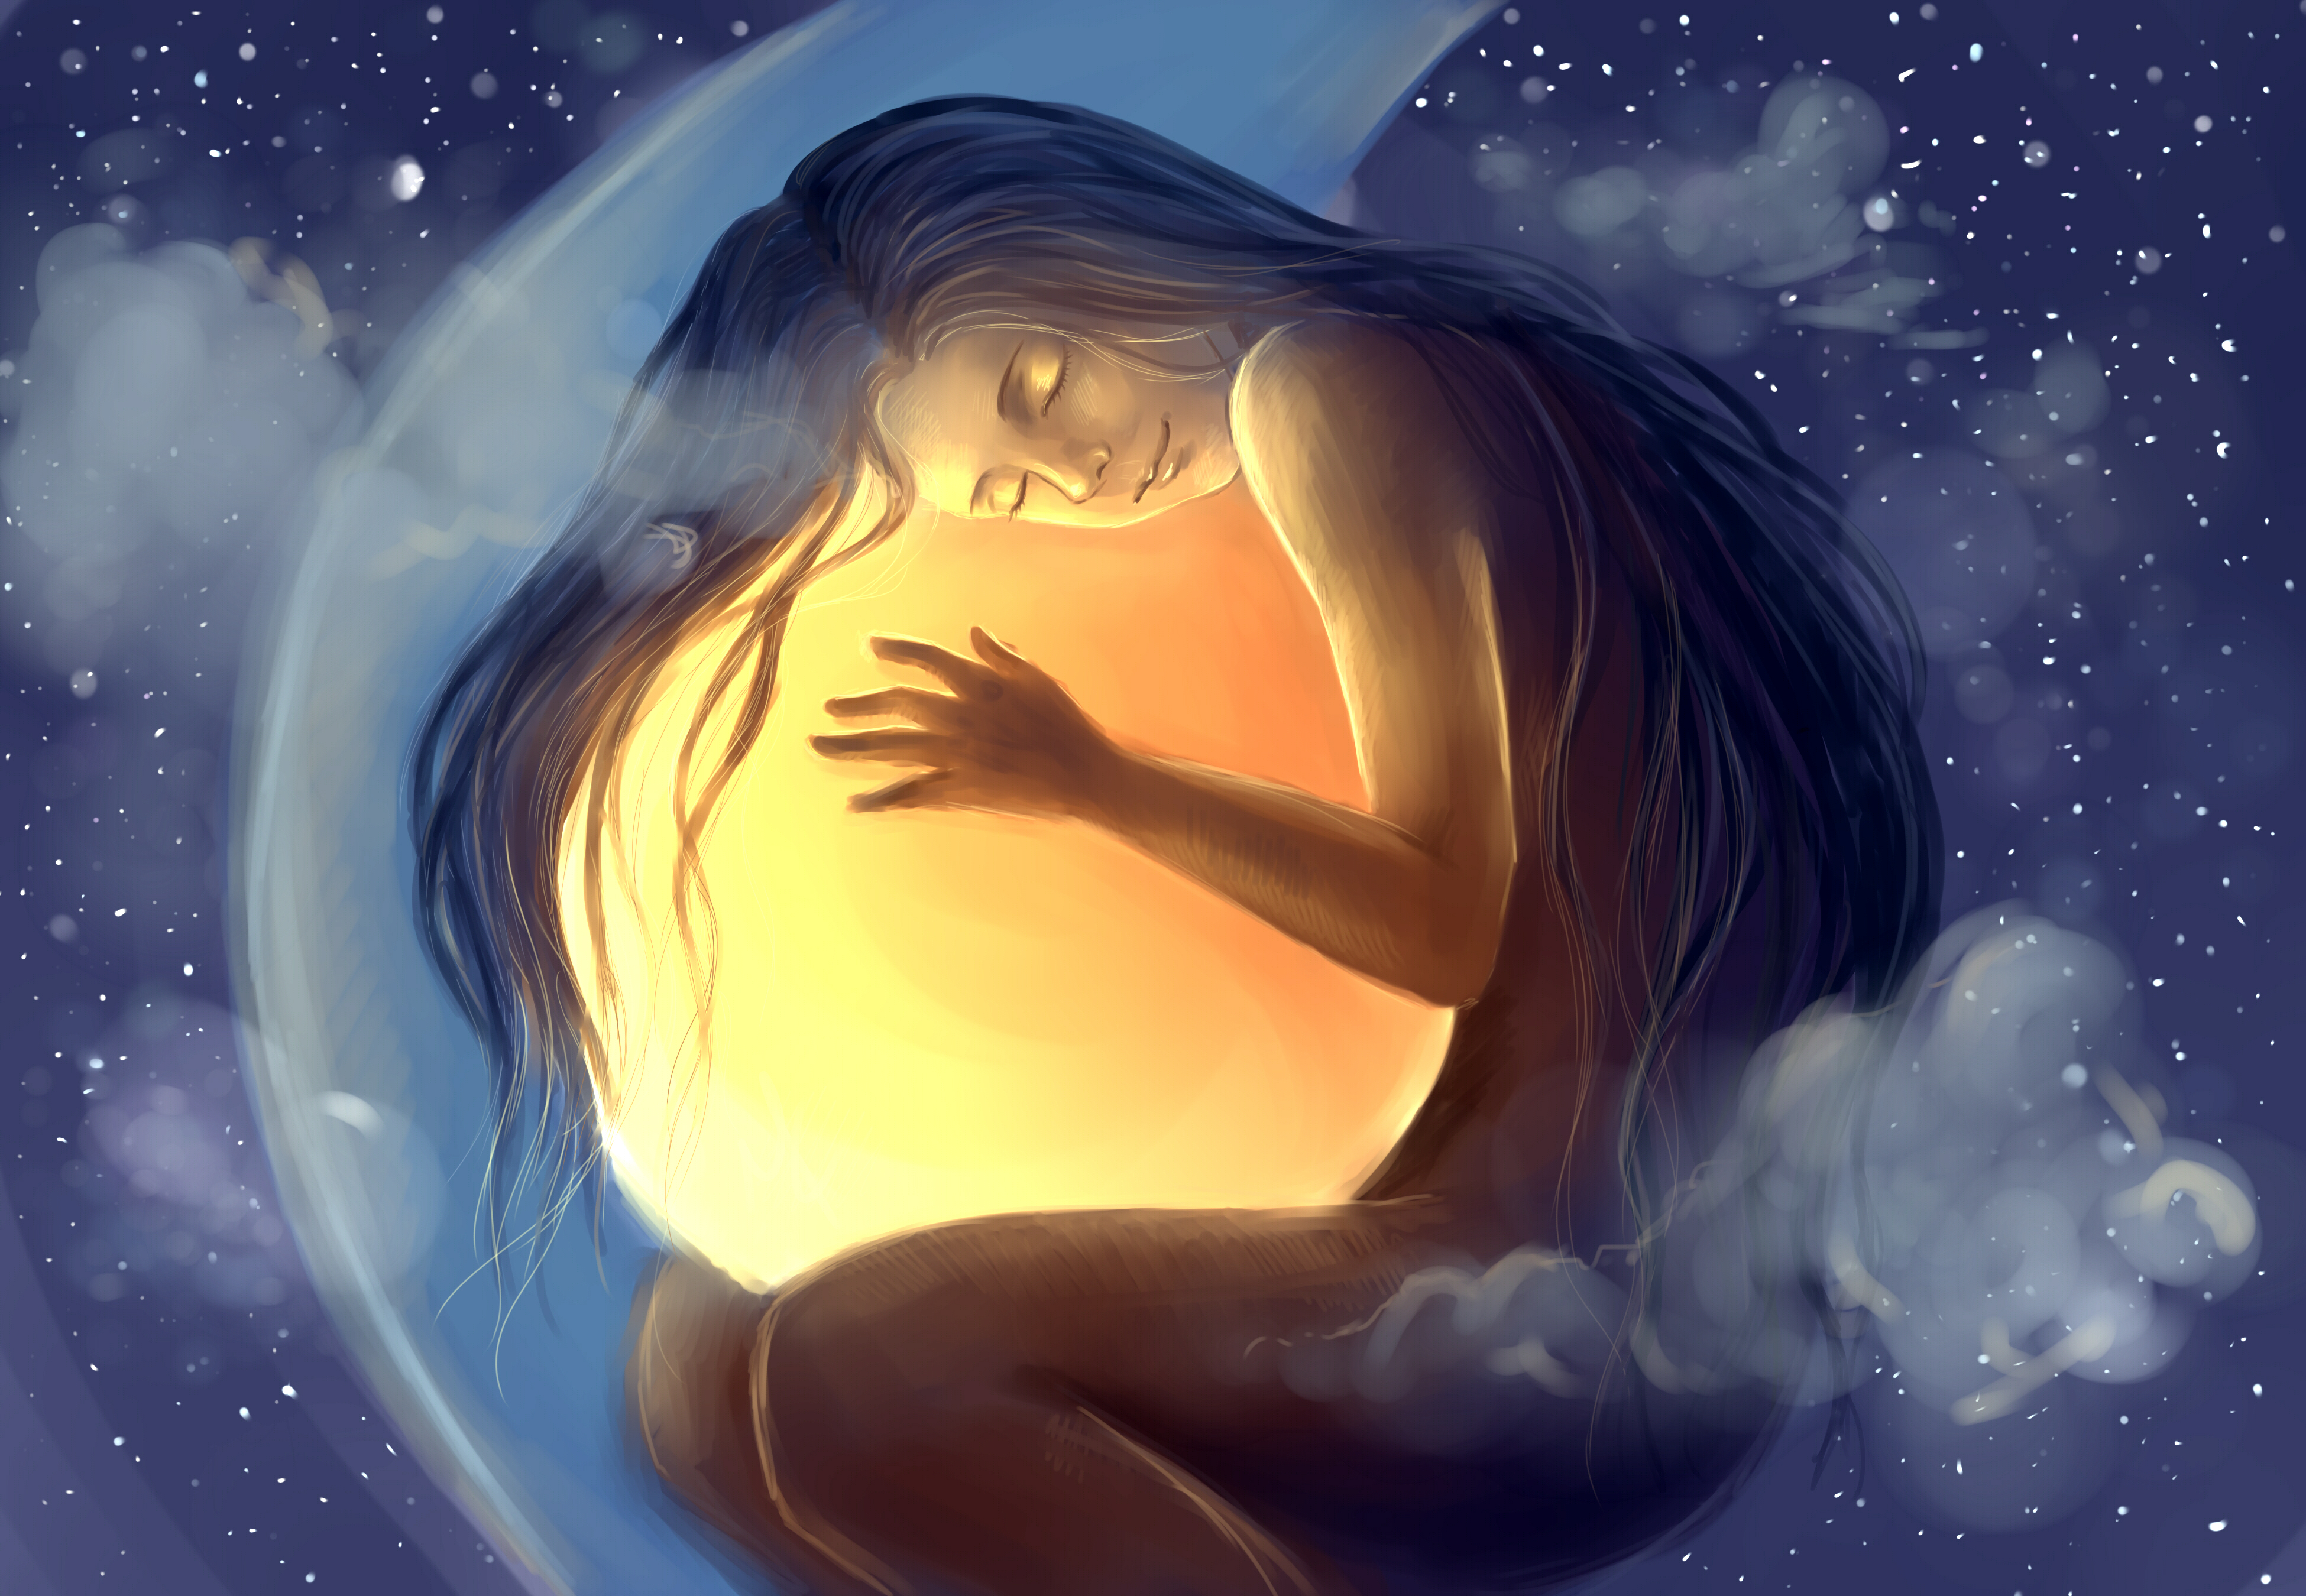 painting-dreaming-crystal-ball-moon-star-sleeping-happy-smile.jpg